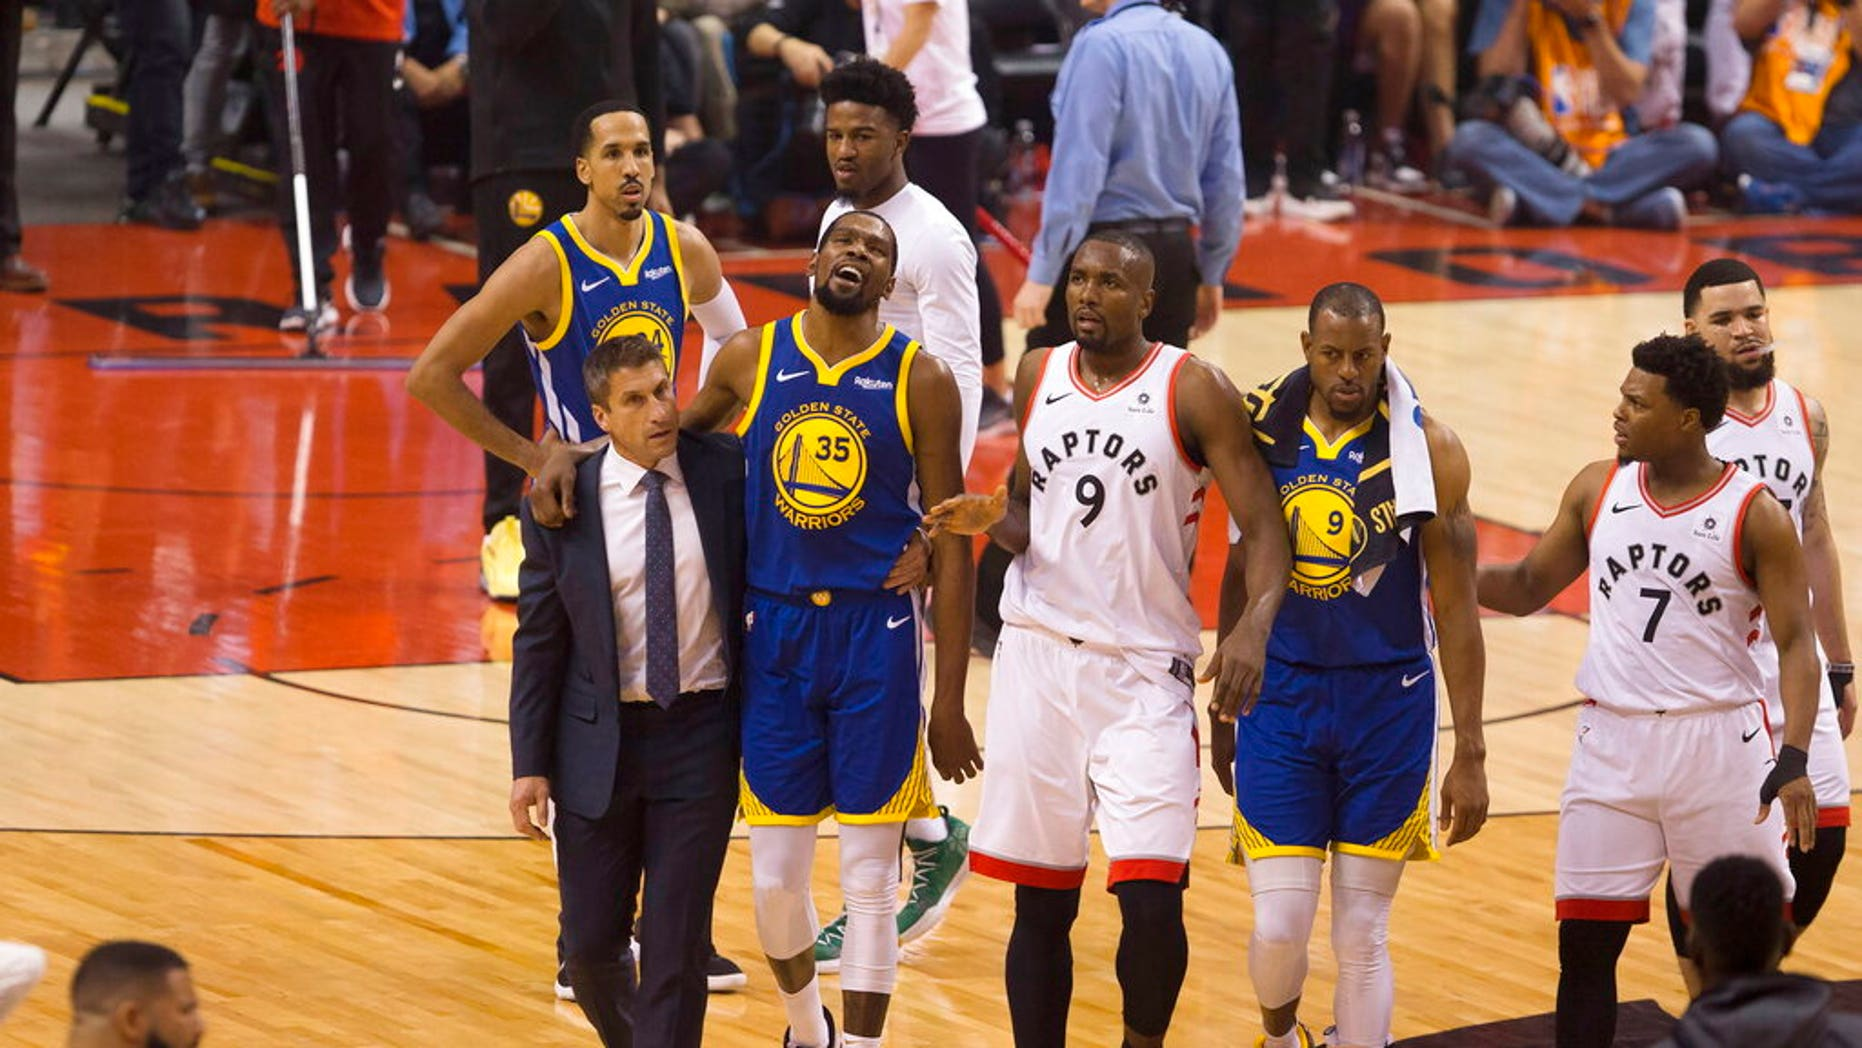 Golden State Warriors forward Kevin Durant (35) walks off the court after sustaining an injury.